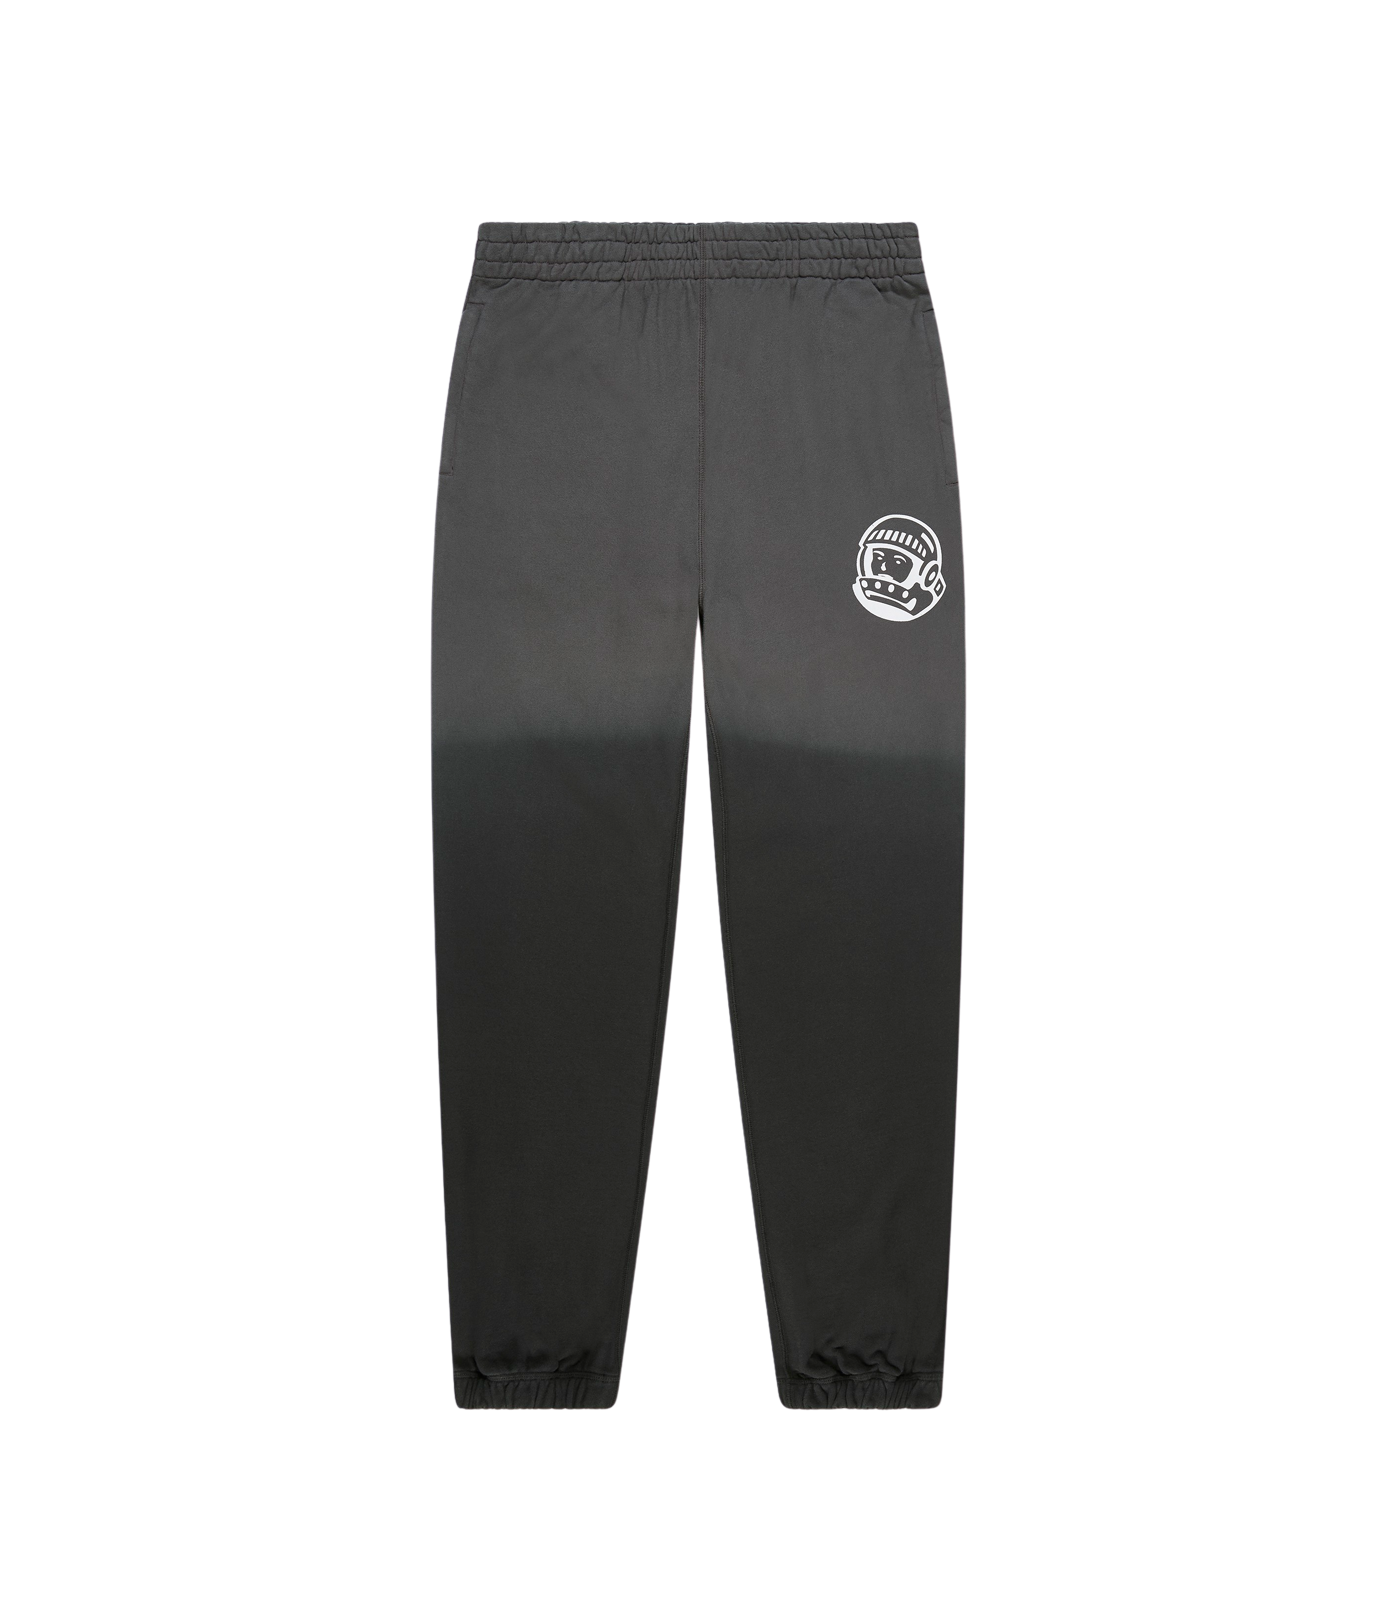 DIP DYE ASTRO SWEATPANTS - BLACK/GREY